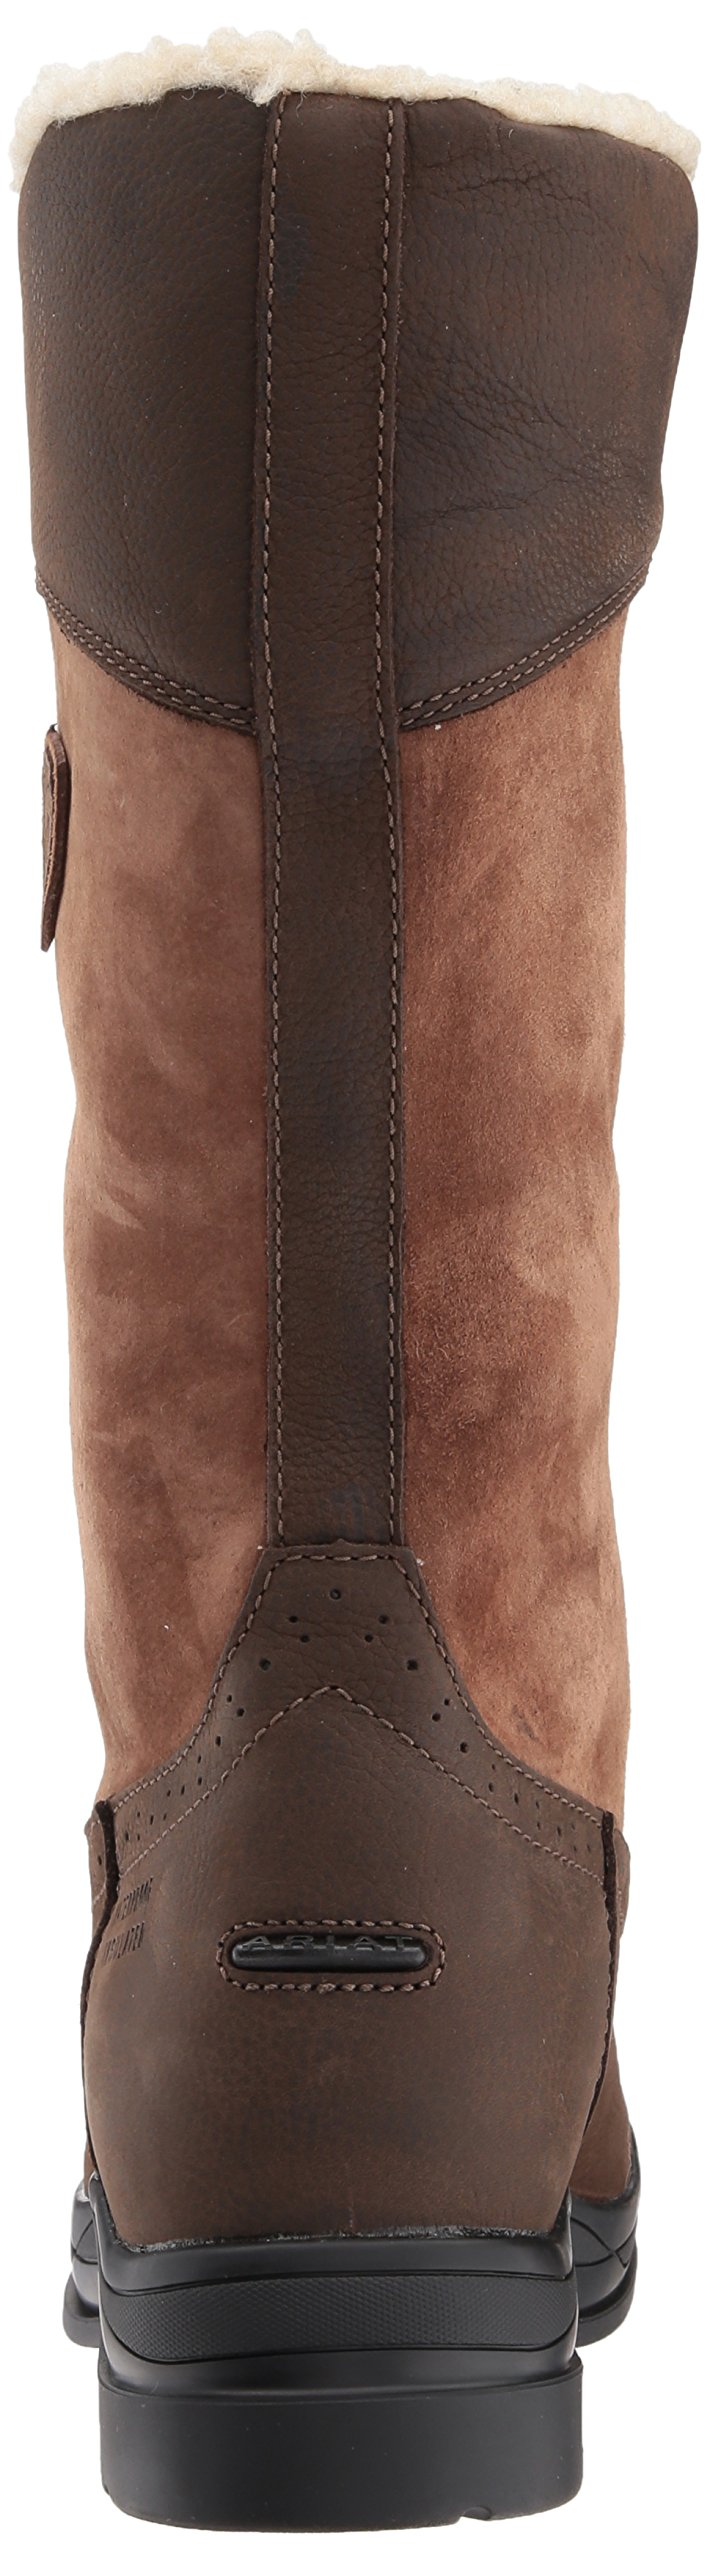 Ariat Women's Wythburn H2O Insulated Country Boot, Java, 7.5 B US by Ariat (Image #2)